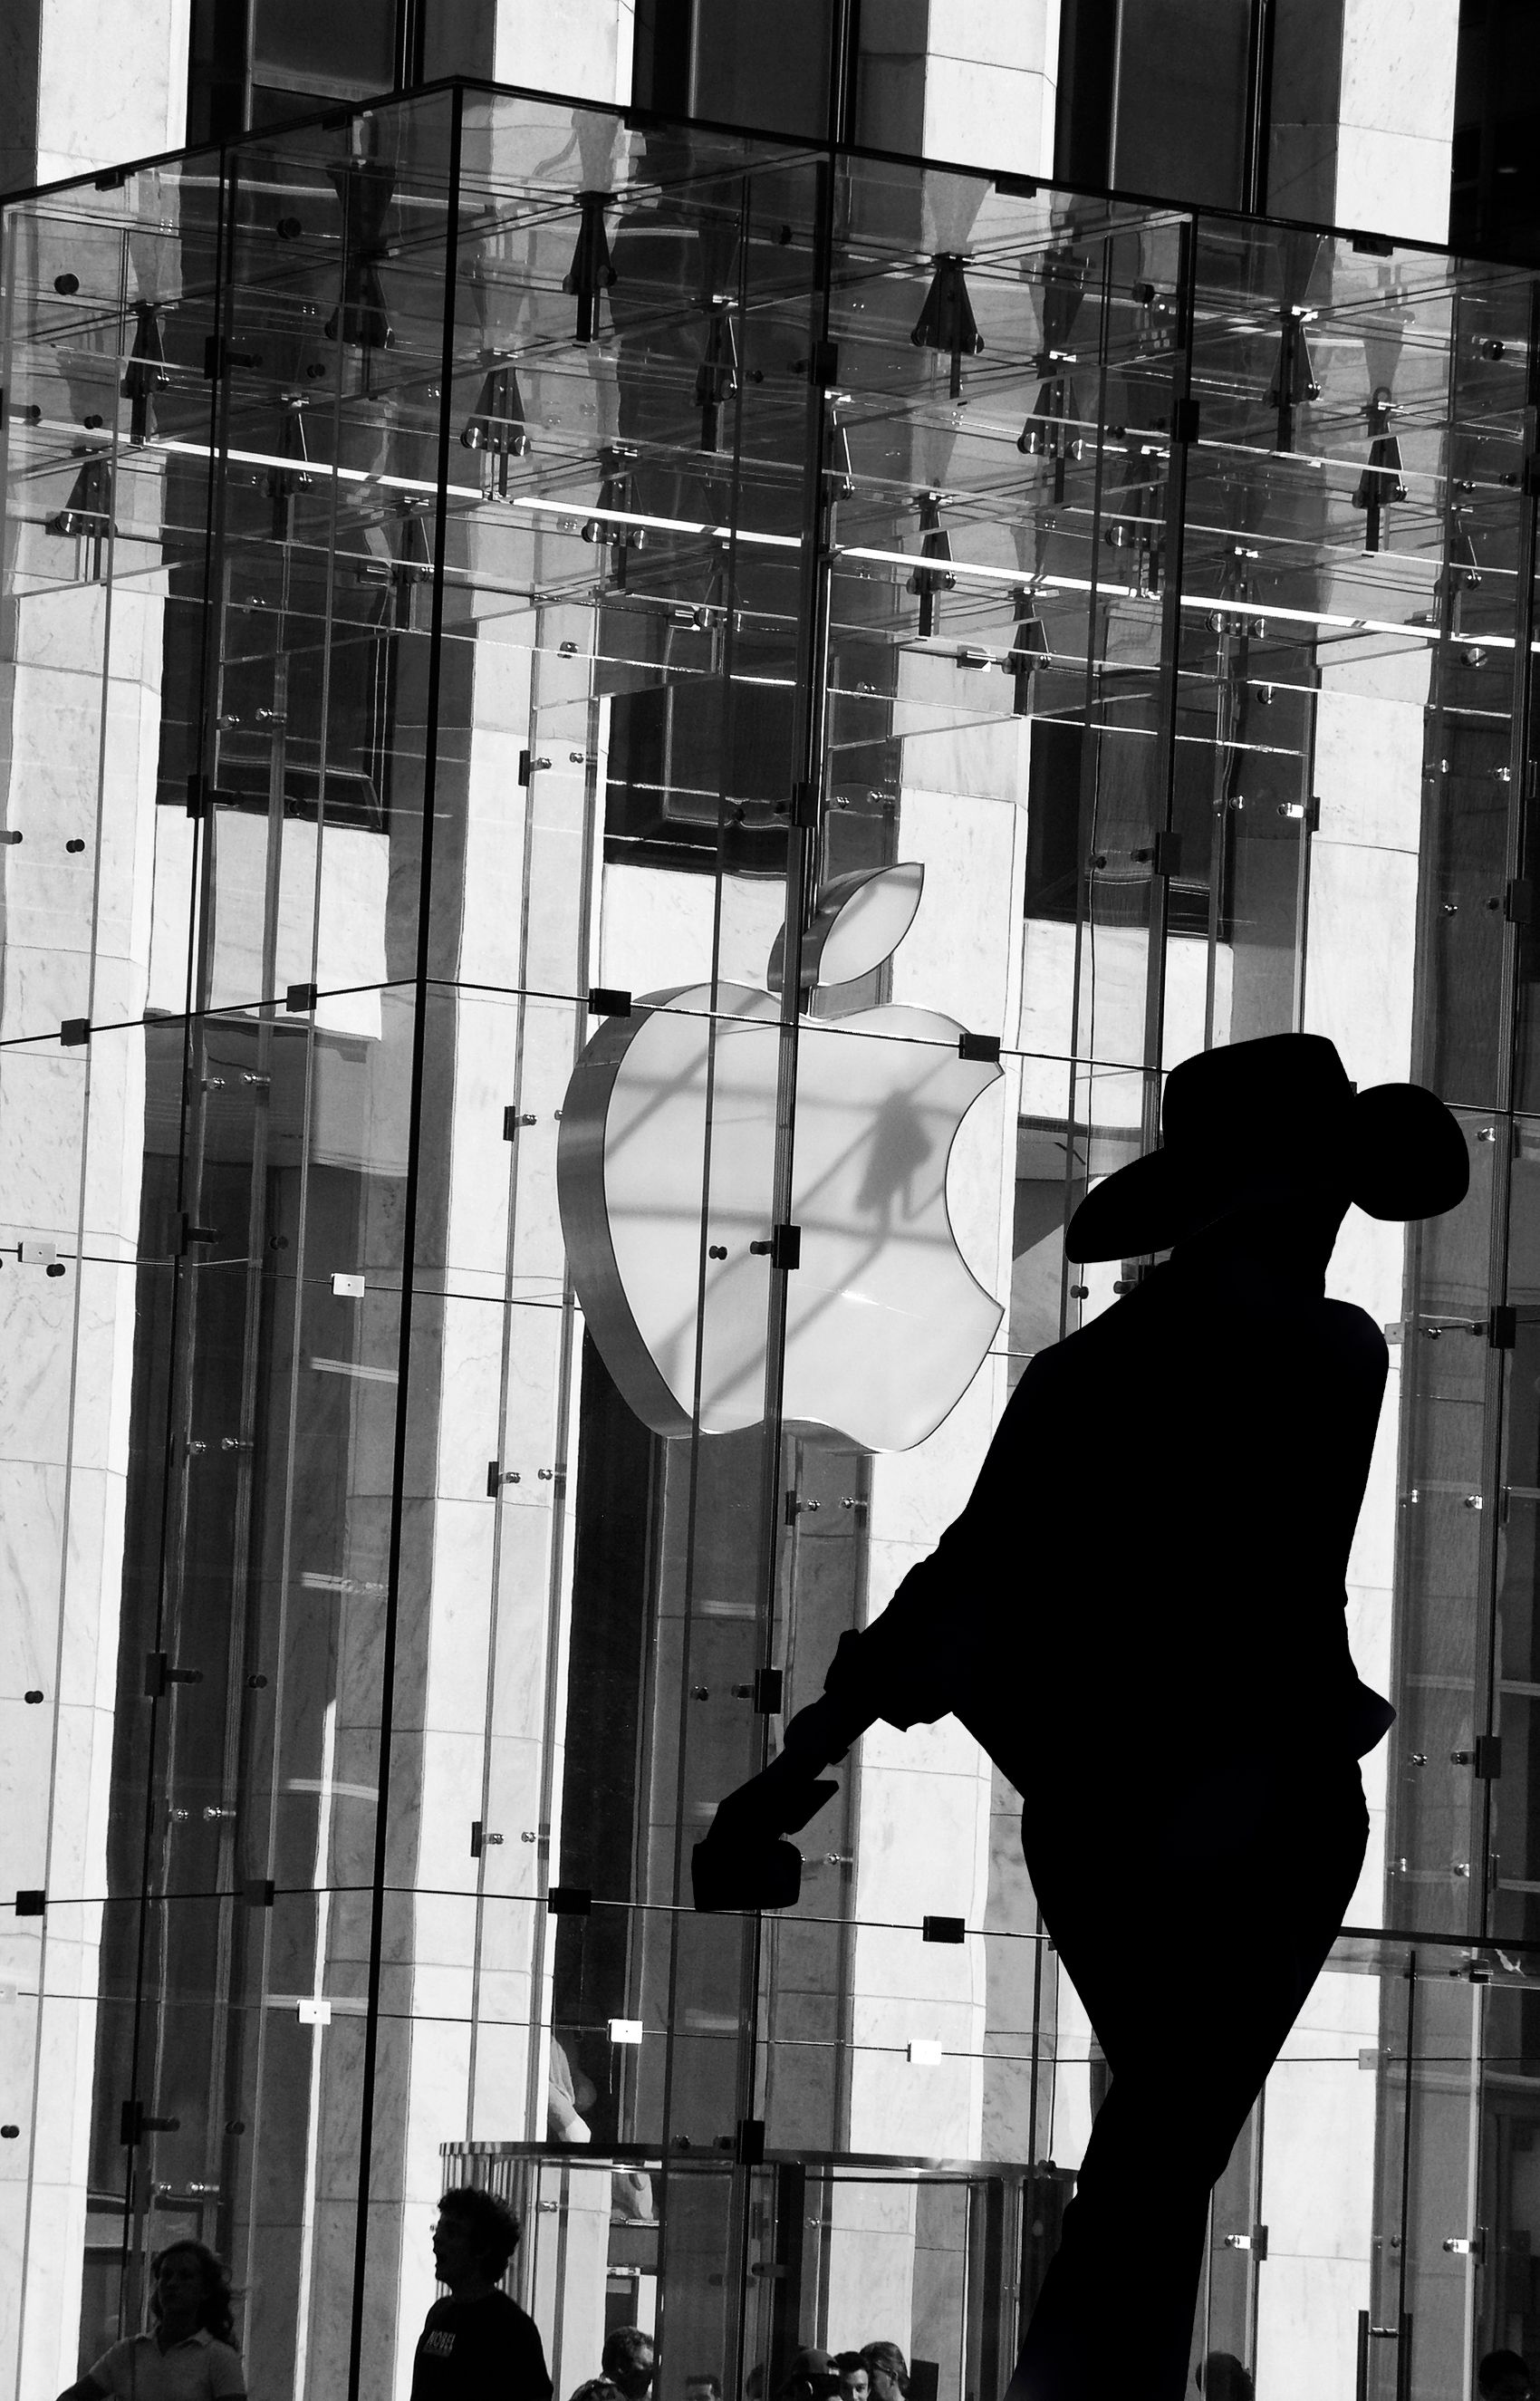 nyc apple store_DSF1464.jpg